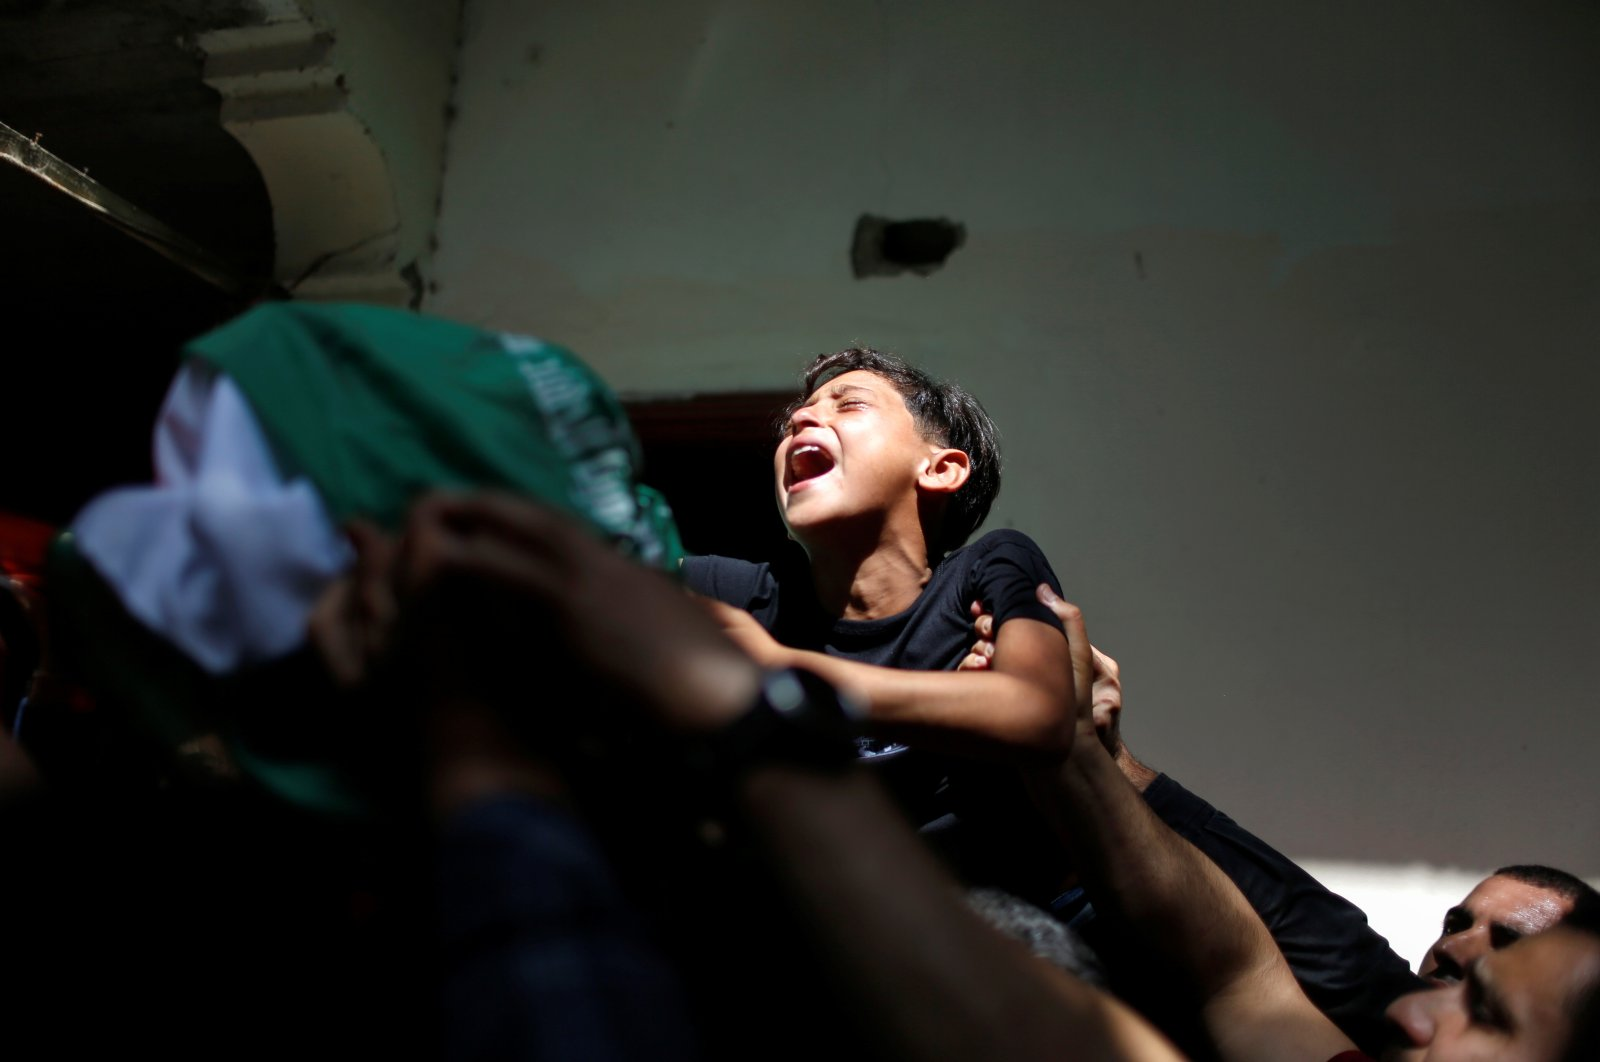 A Palestinian boy cries for his brother Ahmed Al-Shenbari, who was killed by Israeli bombardments, as mourners carry his body during his funeral in the northern Gaza Strip, Palestine, May 11, 2021. (Reuters Photo)